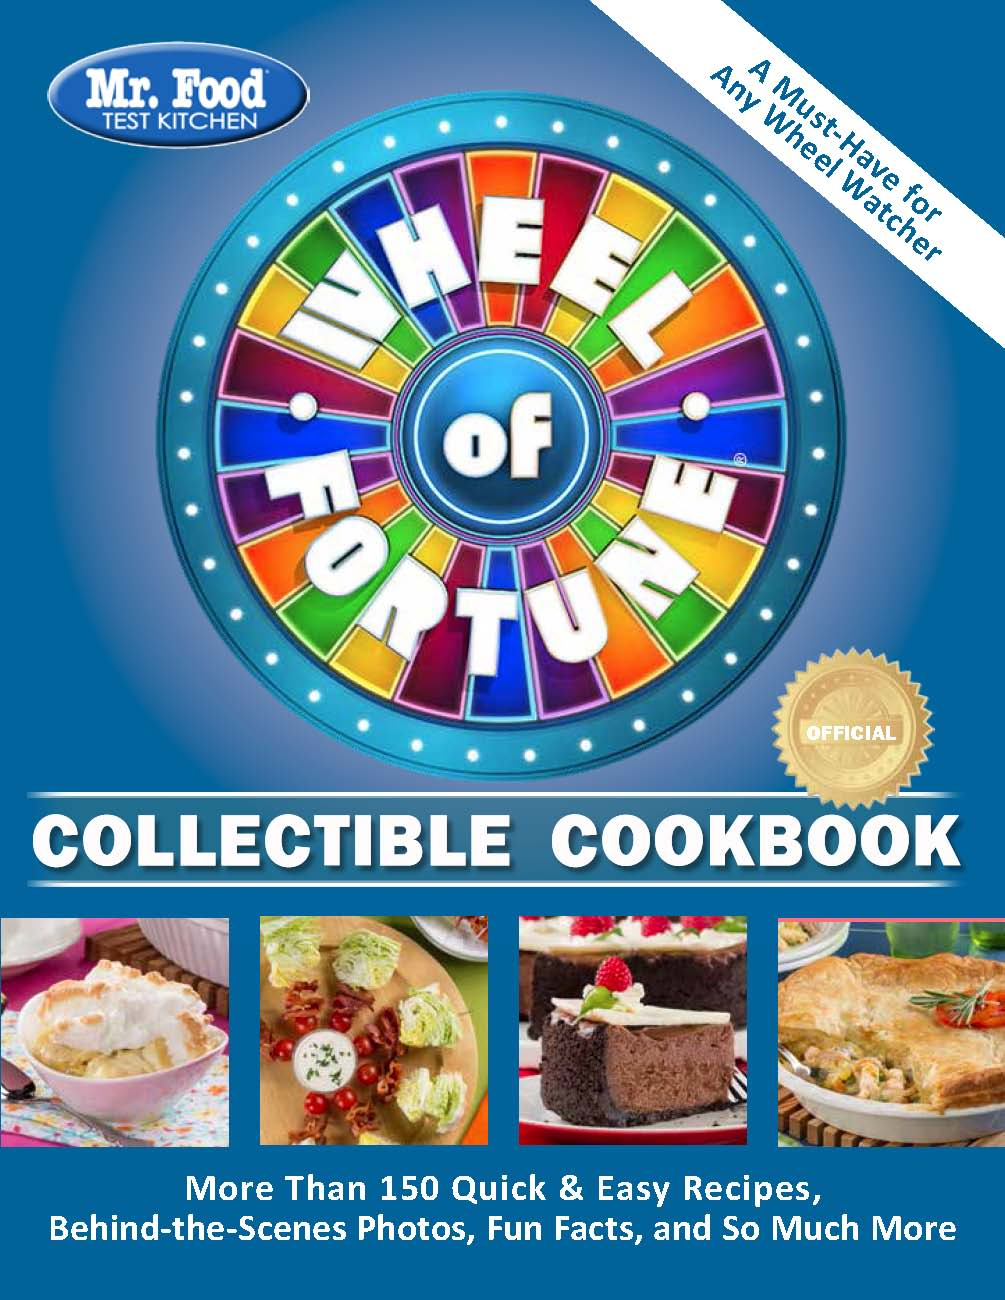 Wheel of fortune cookbook recipe contest entries mr foods blog as much fun as it was to read through all the entries the real treat is testing and tasting the recipes stay tuned for our next post where well share forumfinder Gallery